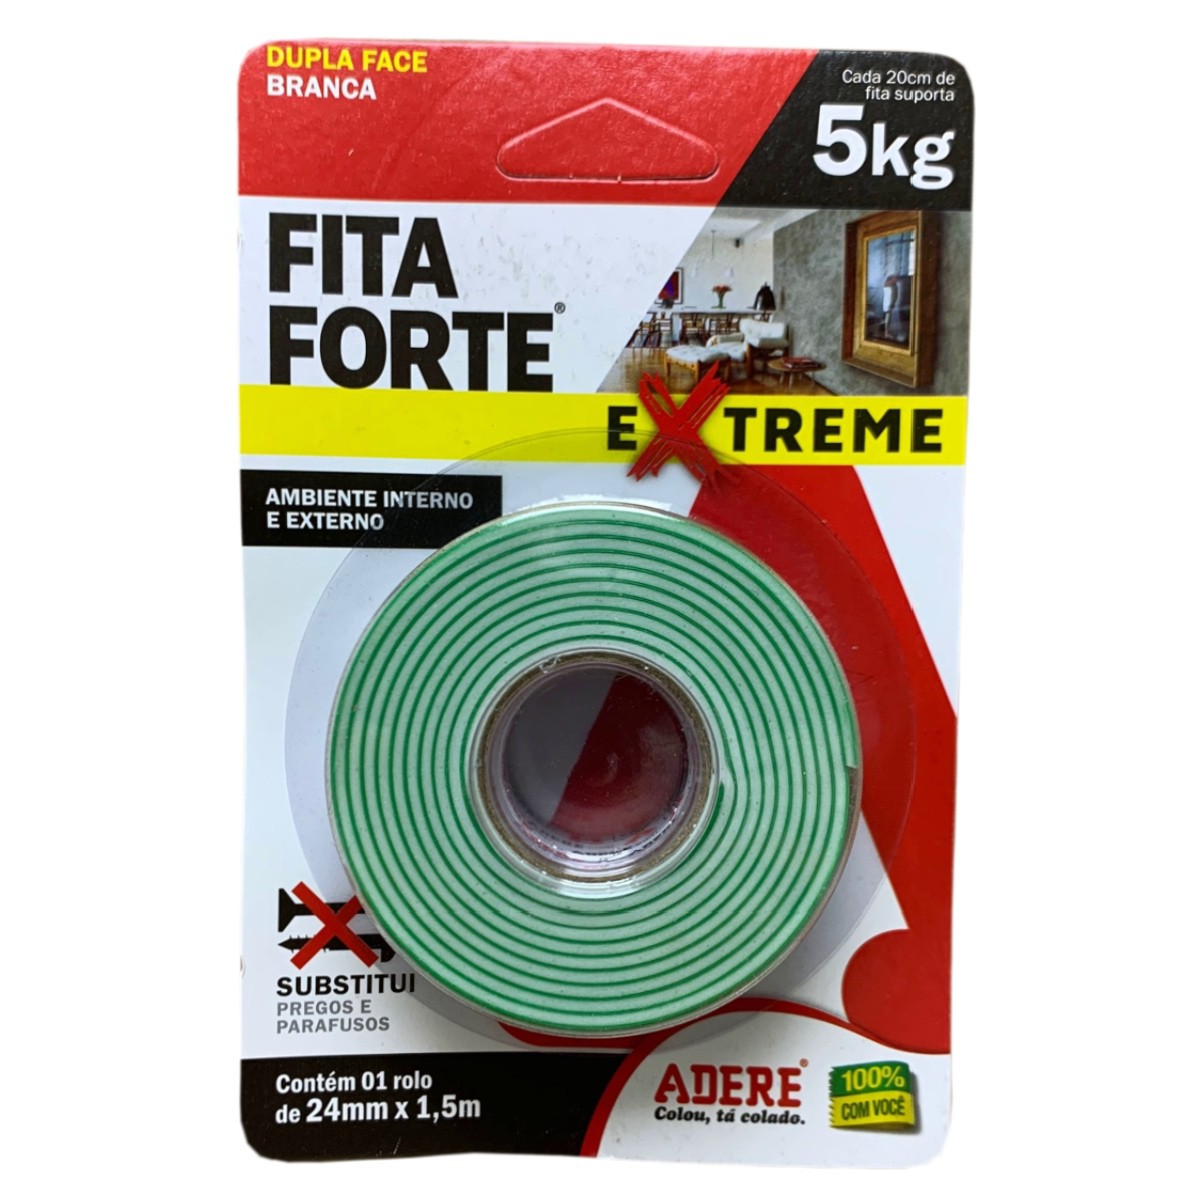 Fita Dupla Face Fita Forte 24mm X 1,5m Adere 5kg Extreme